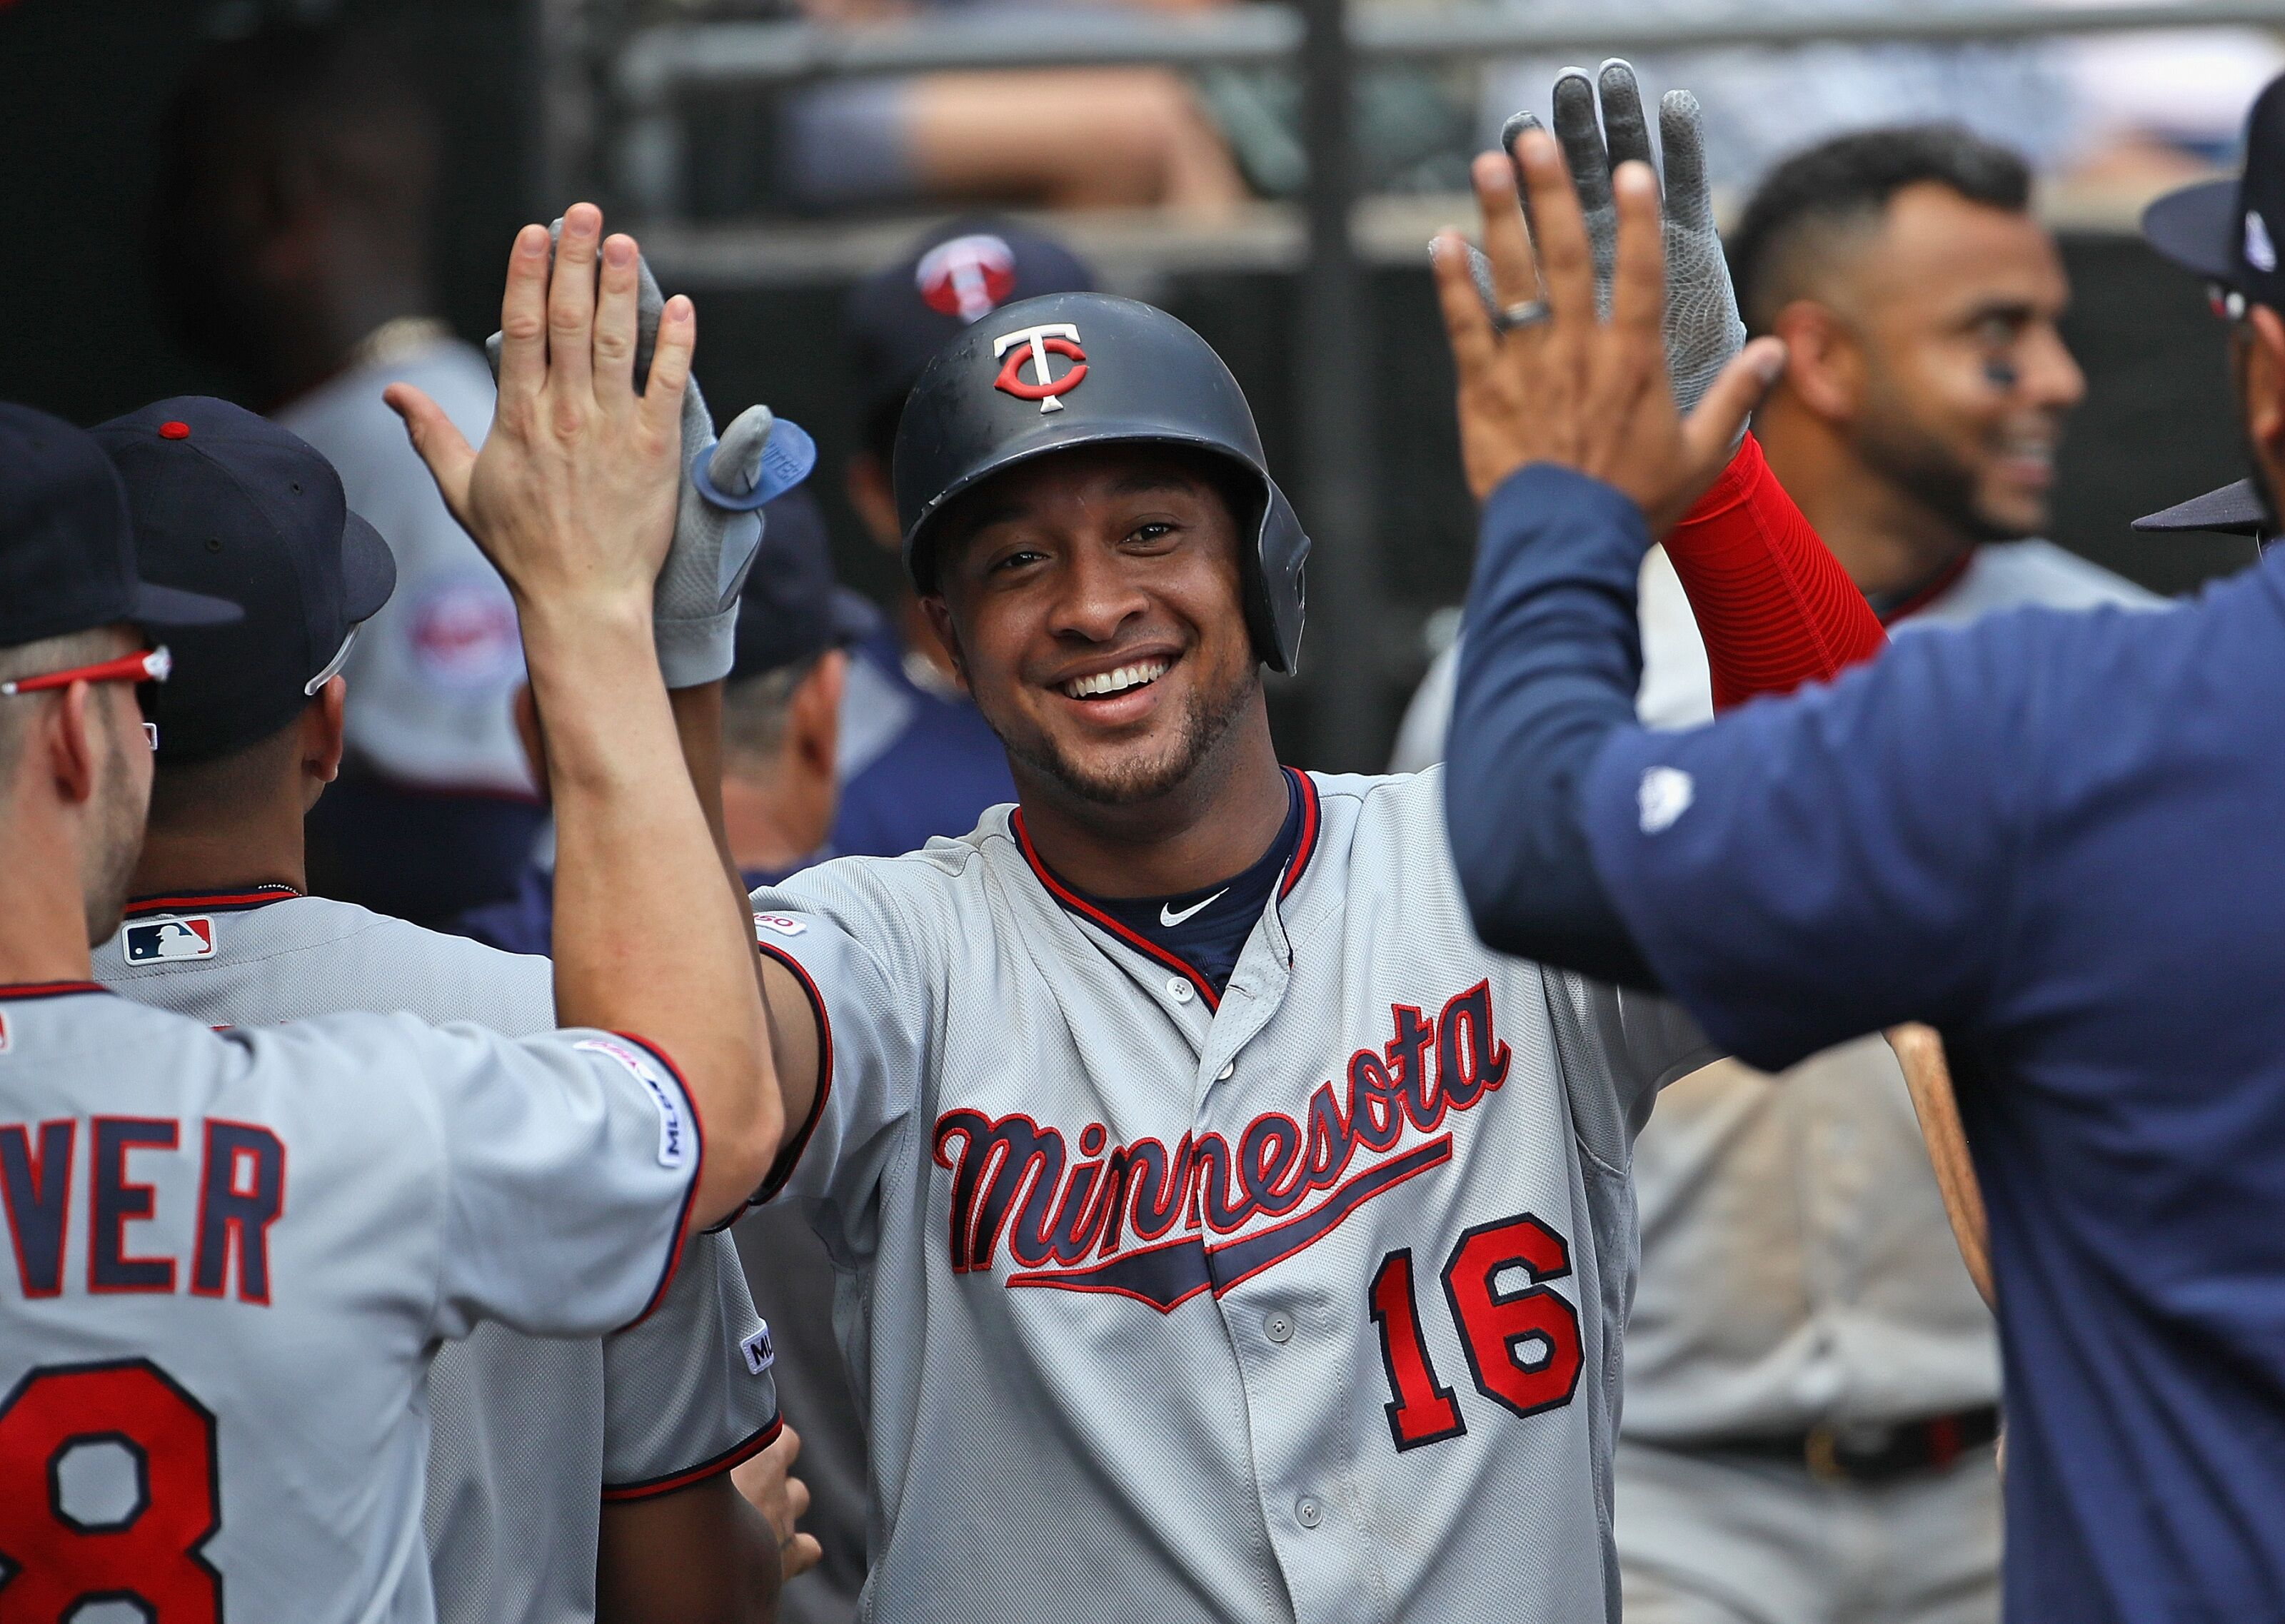 Minnesota Twins are kings of the long ball in 2019